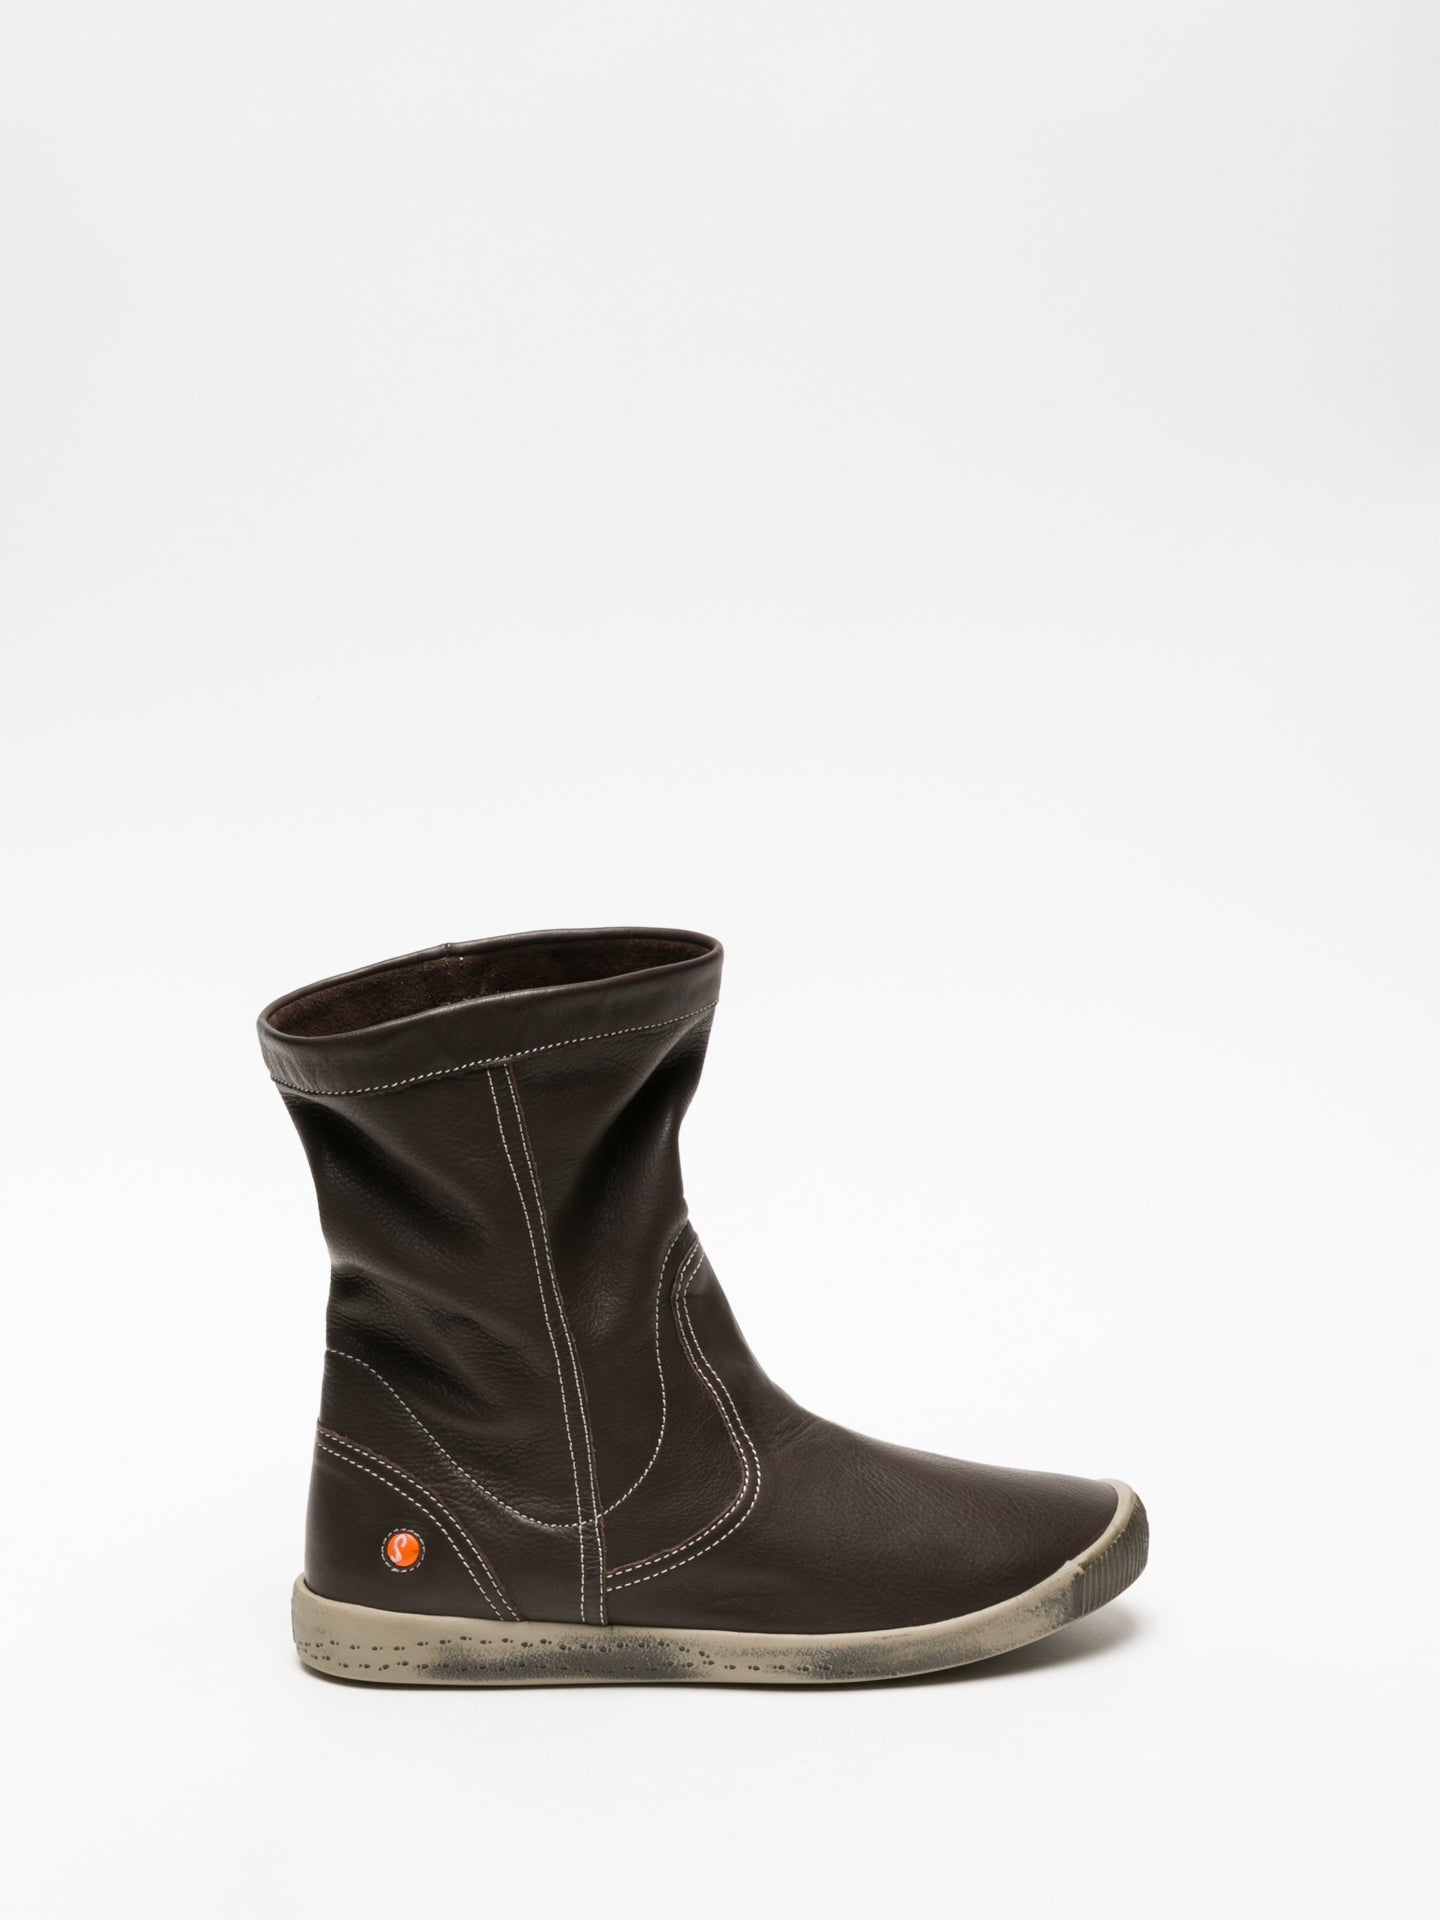 SOFTINOS Brown Round Toe Ankle Boots